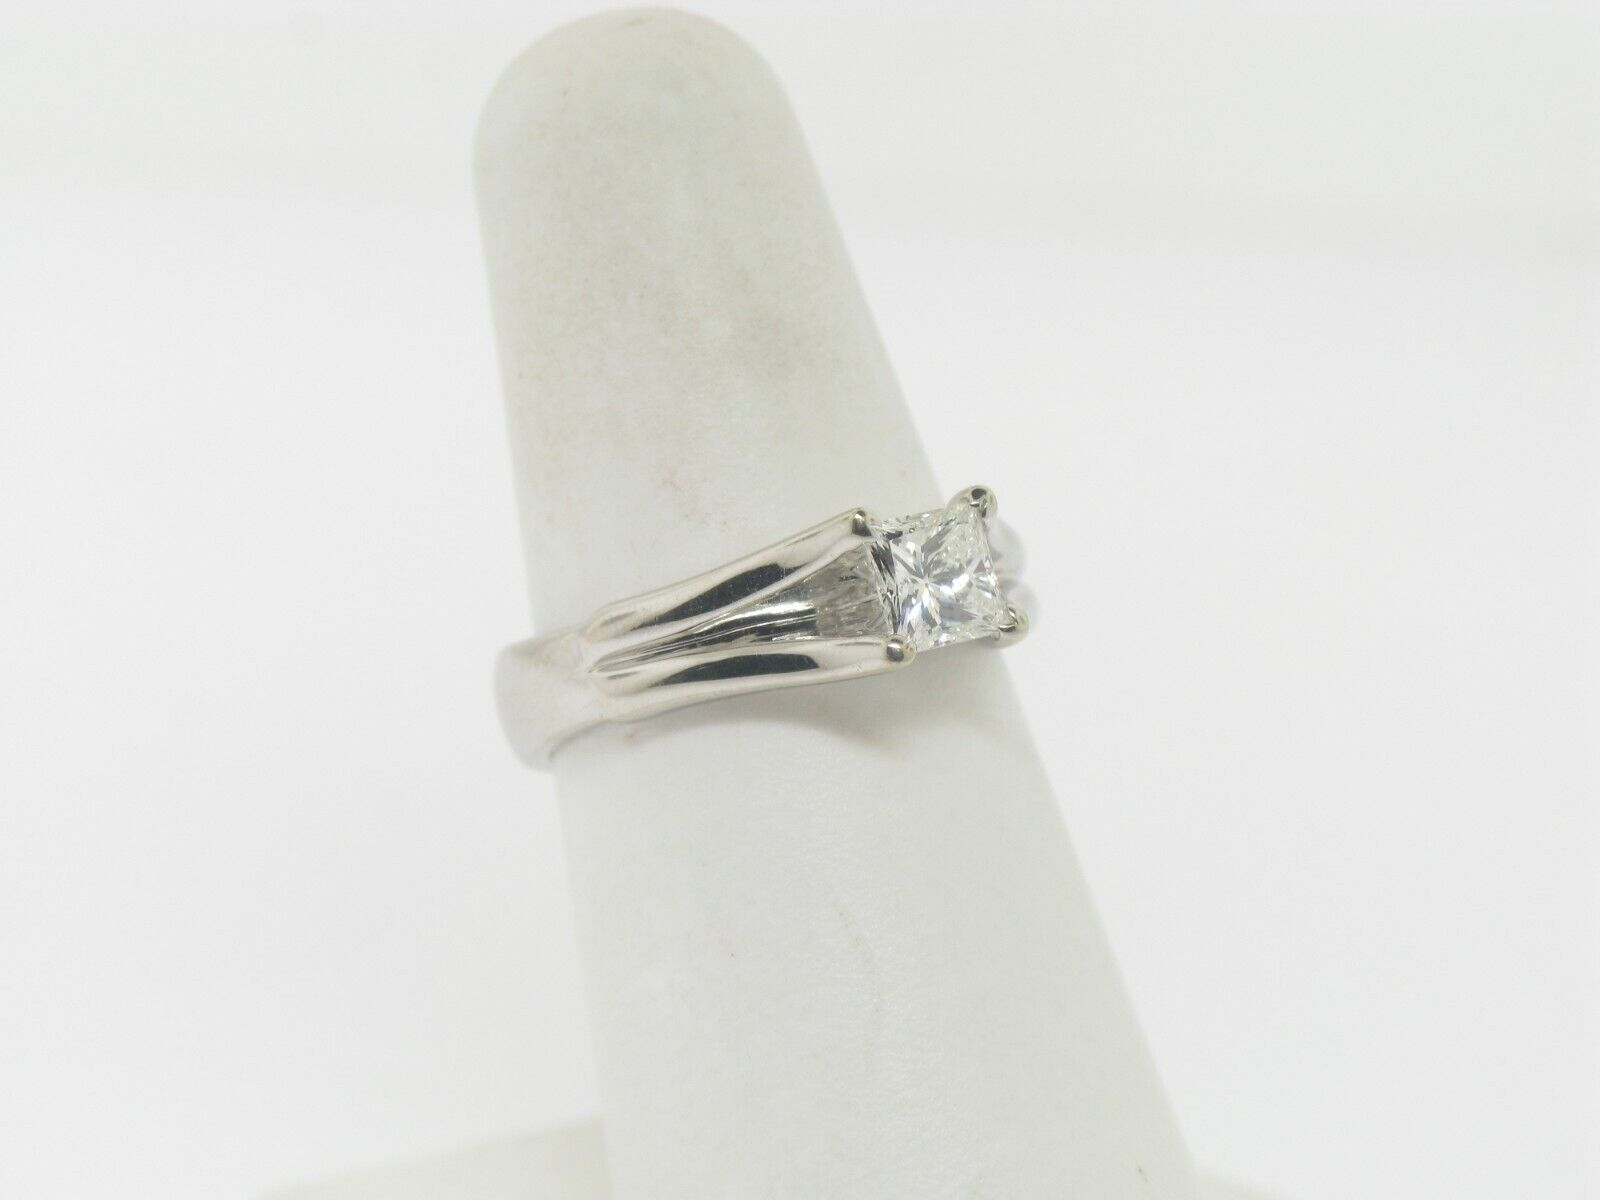 18K White Gold .64 CT Princess Cut Engagement Ring (Internally Flawless) (GIA) 3